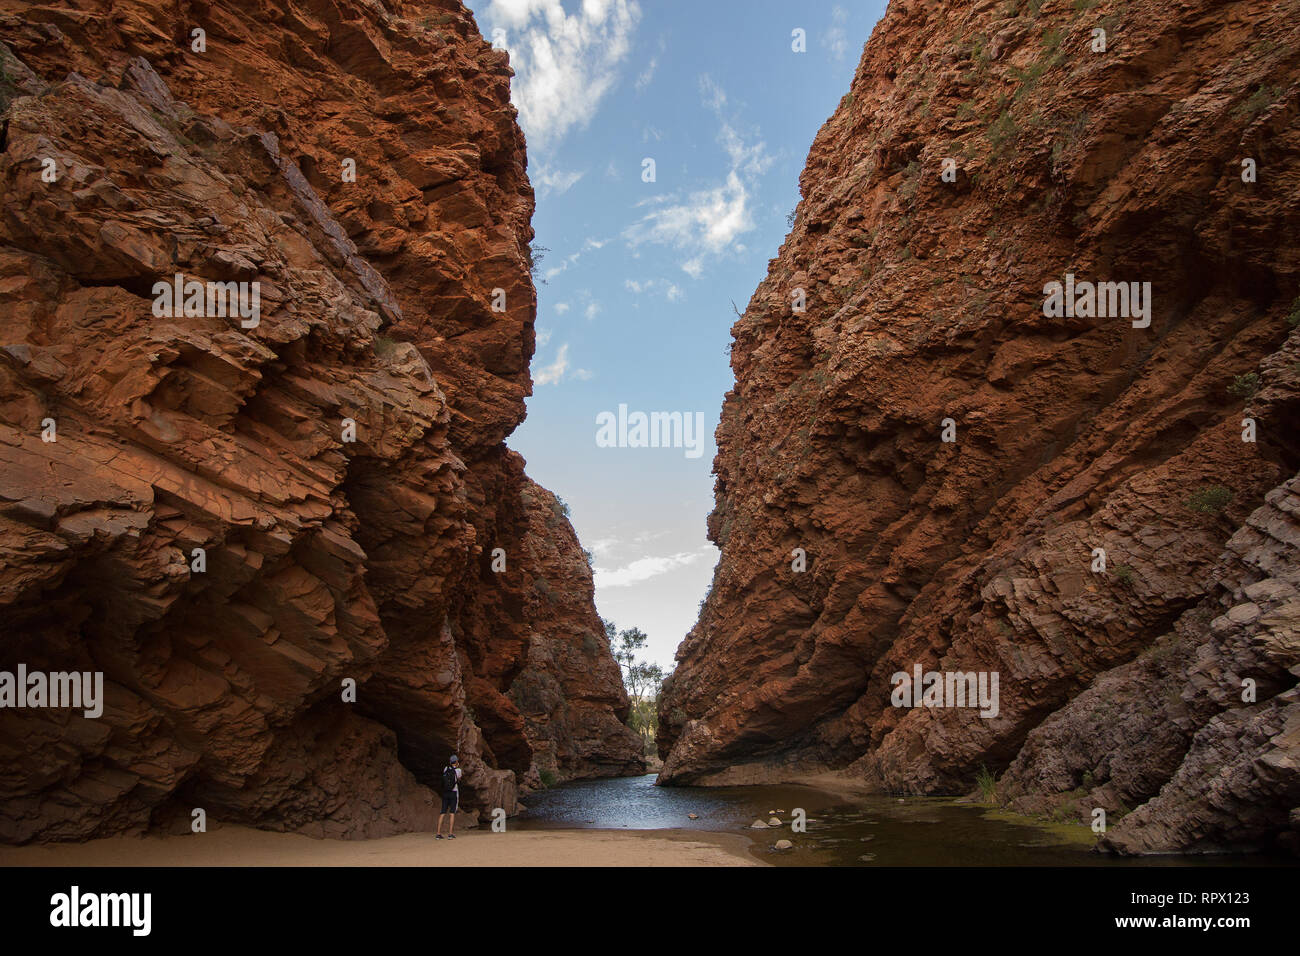 Simpsons Gap (Arrernte: Rungutjirpa) is one of the gaps in the West MacDonnell Ranges in Australia's Northern Territory. west of Alice Springs. - Stock Image